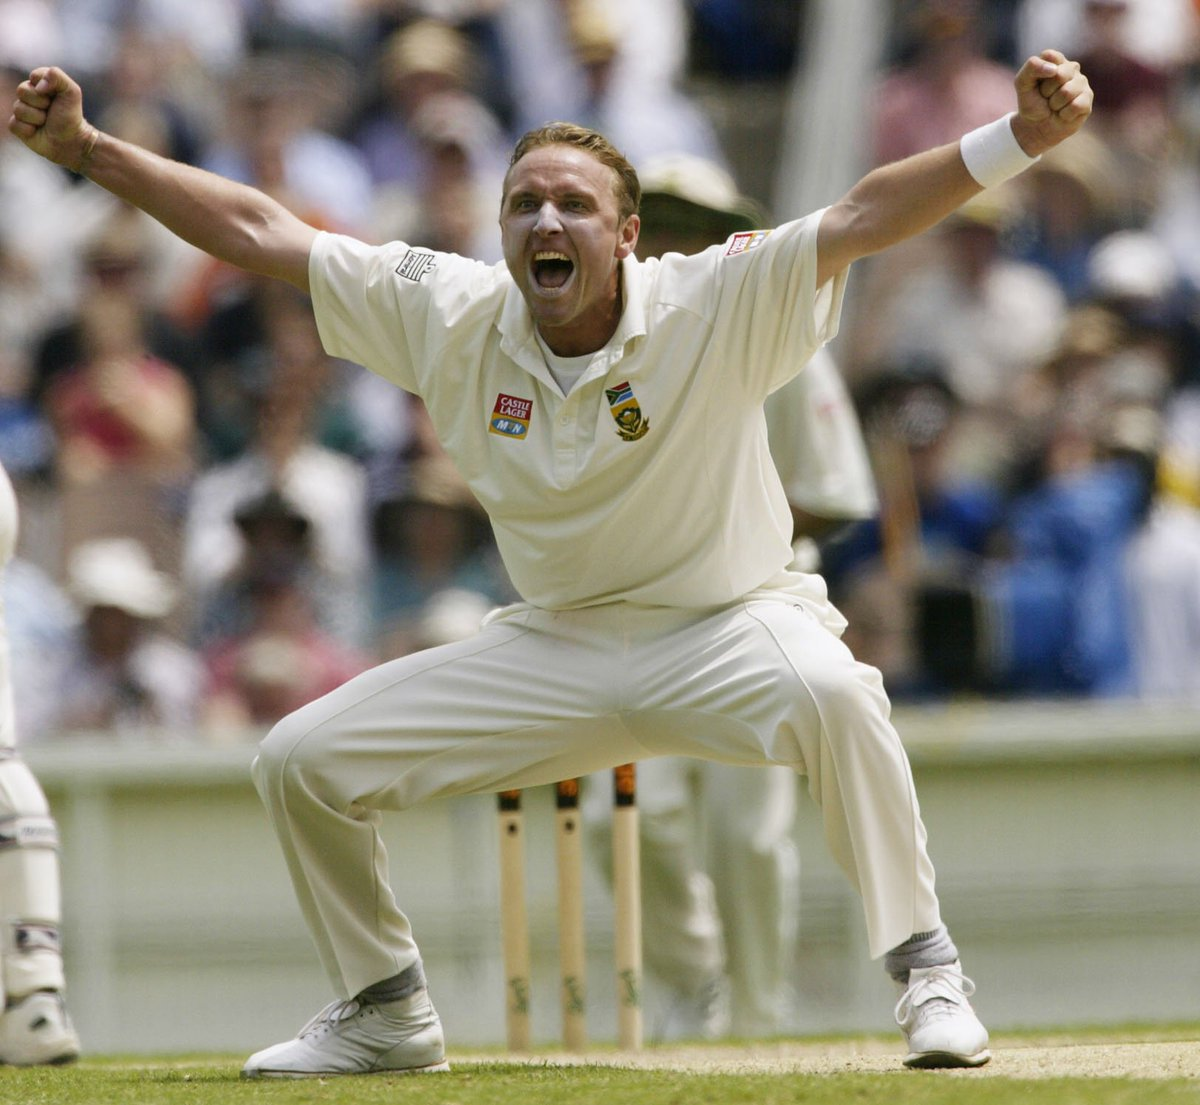 BREAKING: Allan Donald has been named as the first of three 2019 inductees into the ICC Cricket Hall of Fame.